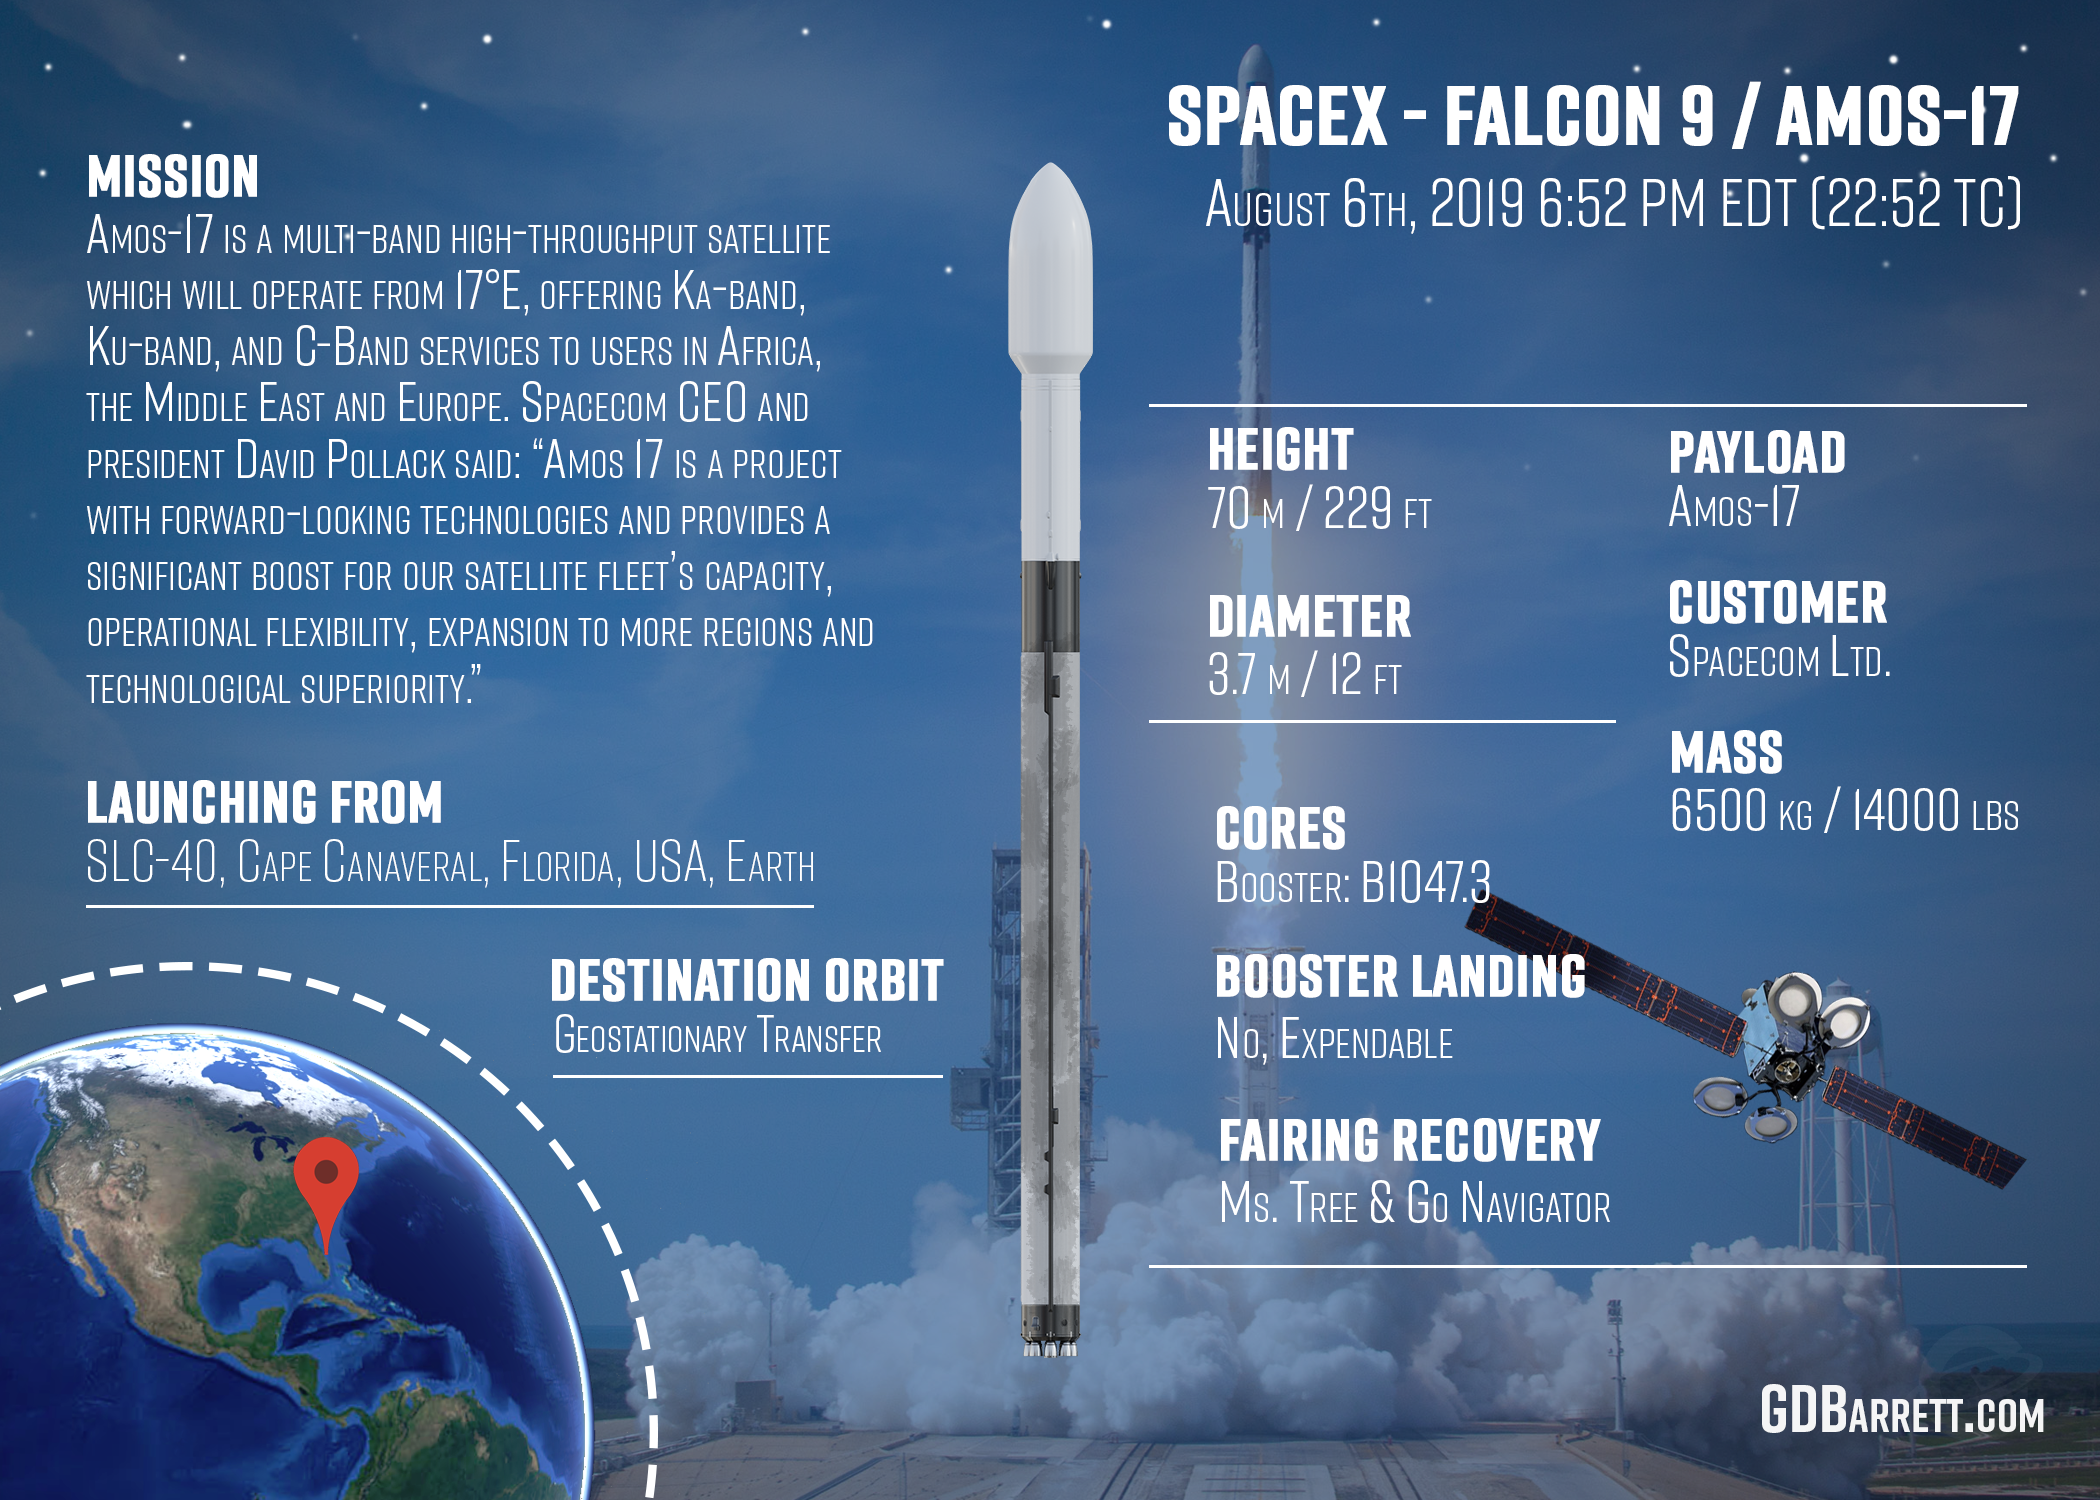 SpaceX Falcon 9 AMOS-17